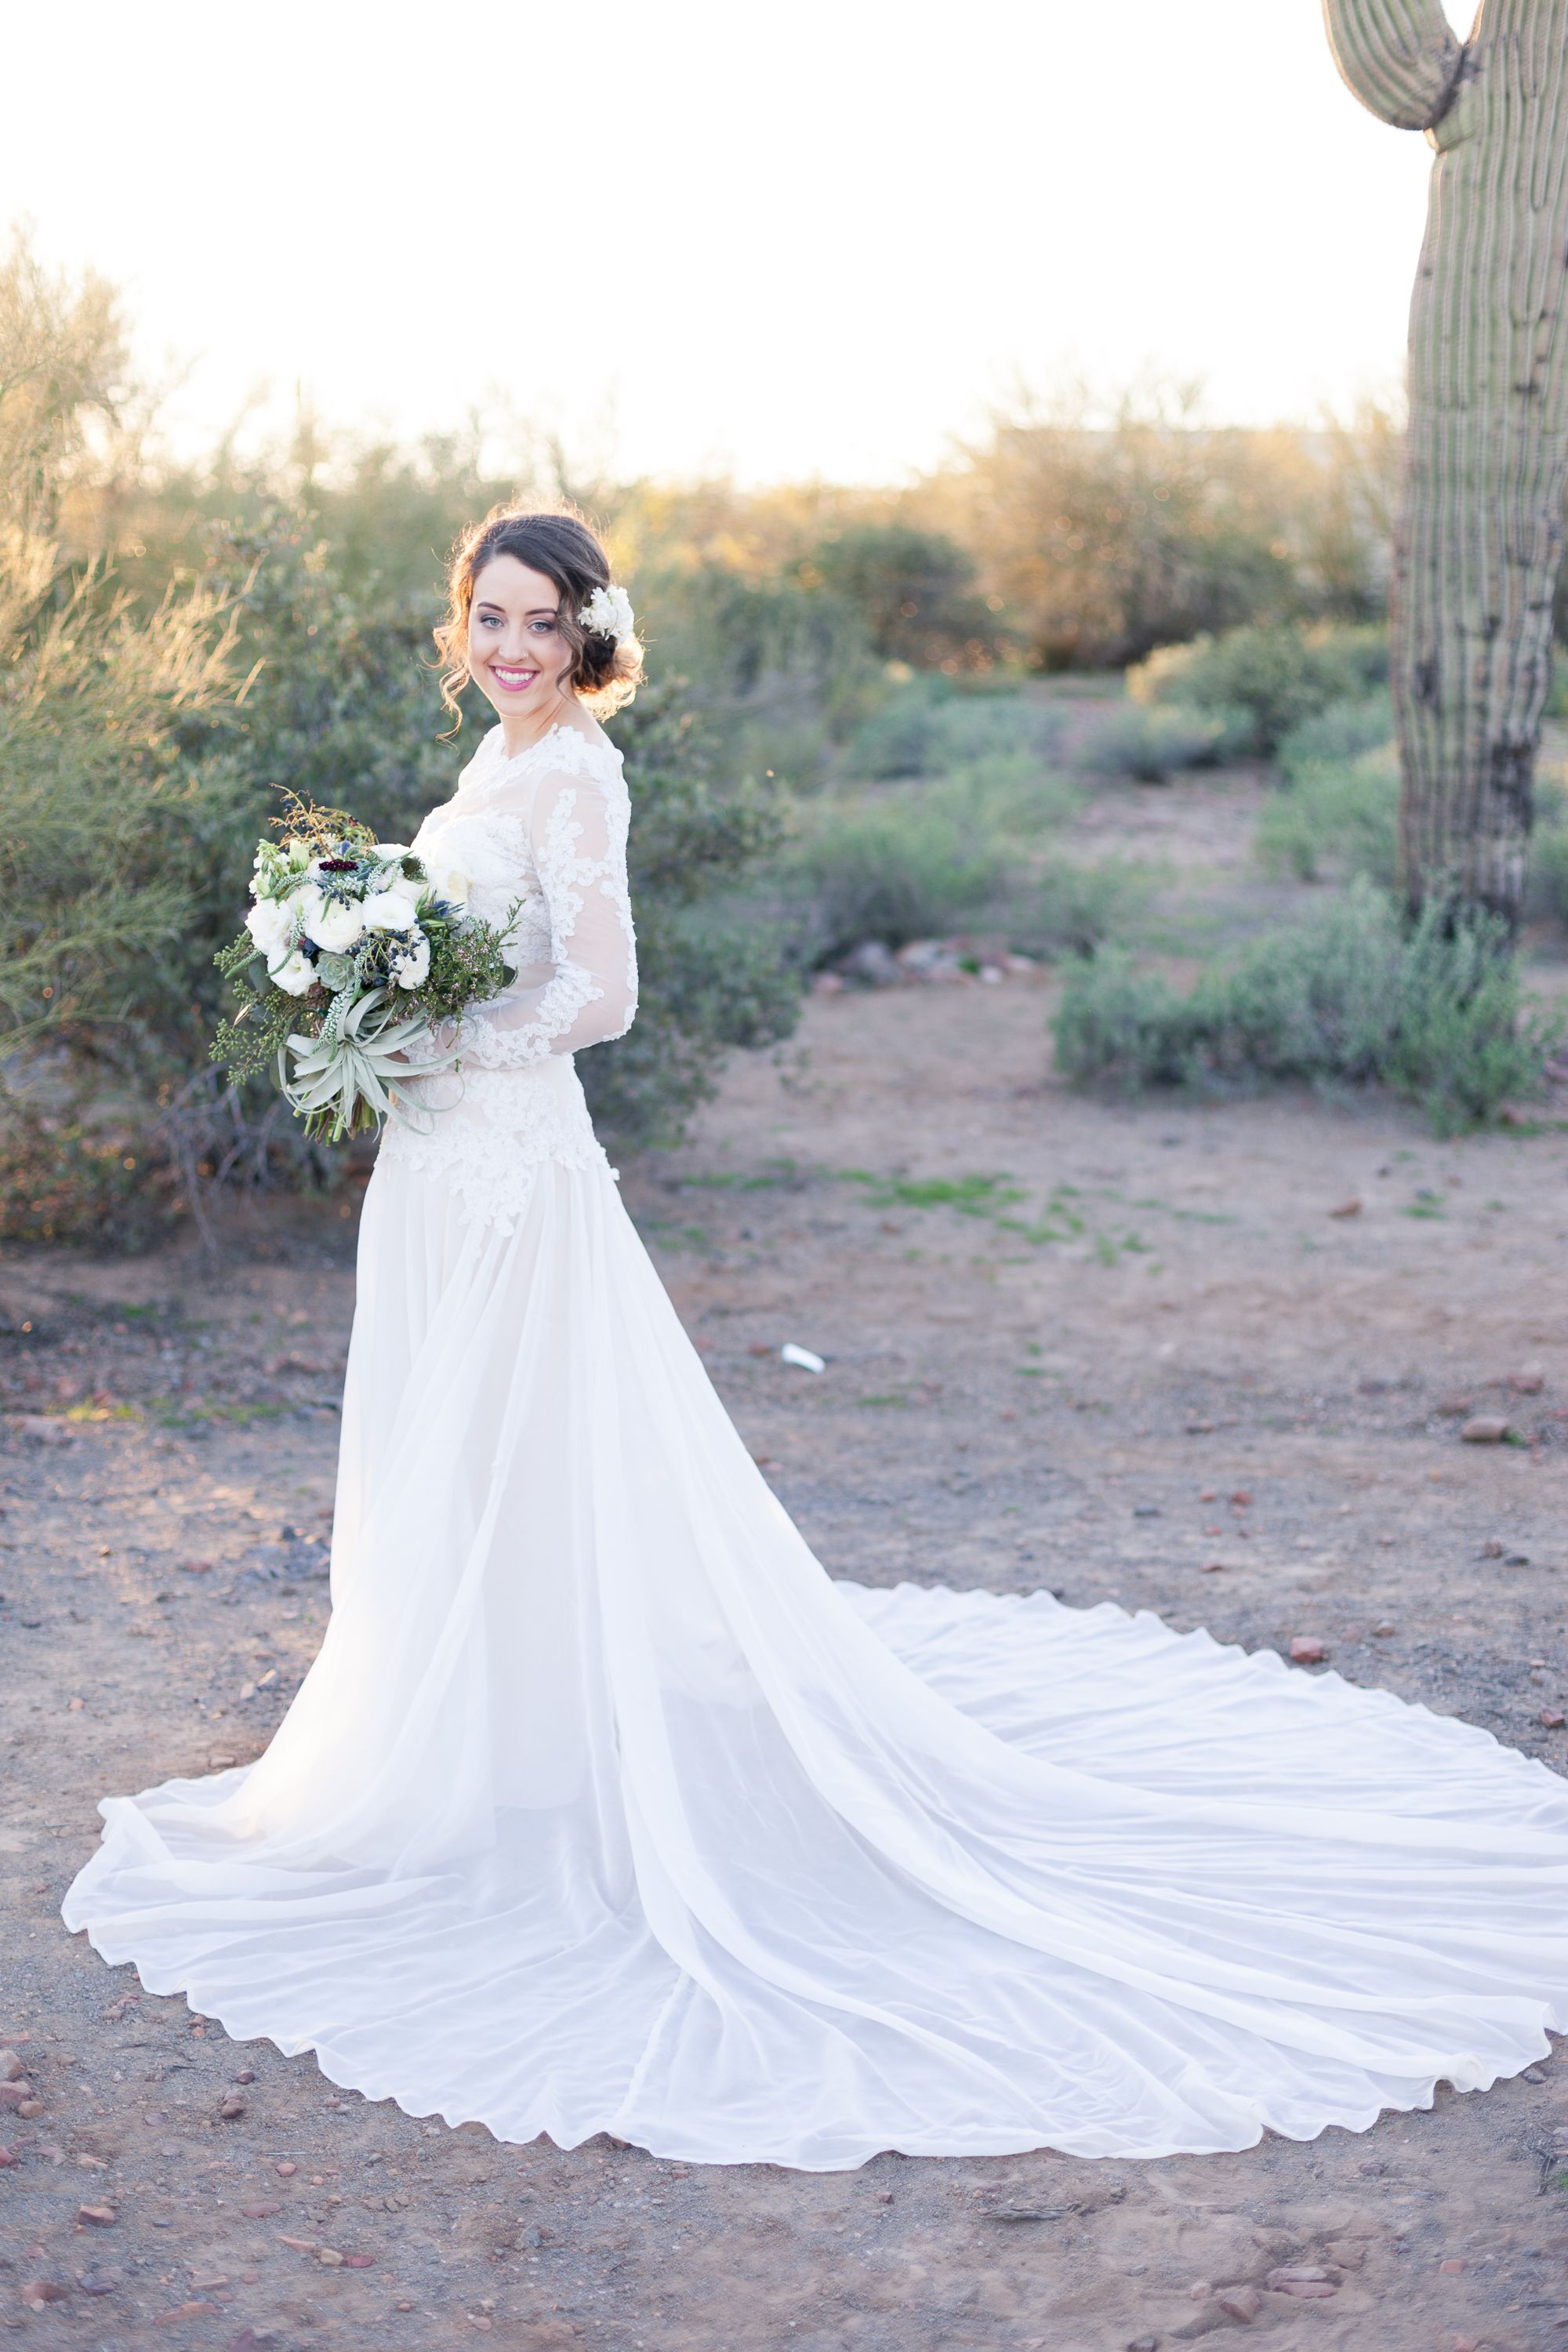 Where can i rent a wedding dress  Modern Romance Desert Shoot with Lauren Buman  Modern romance